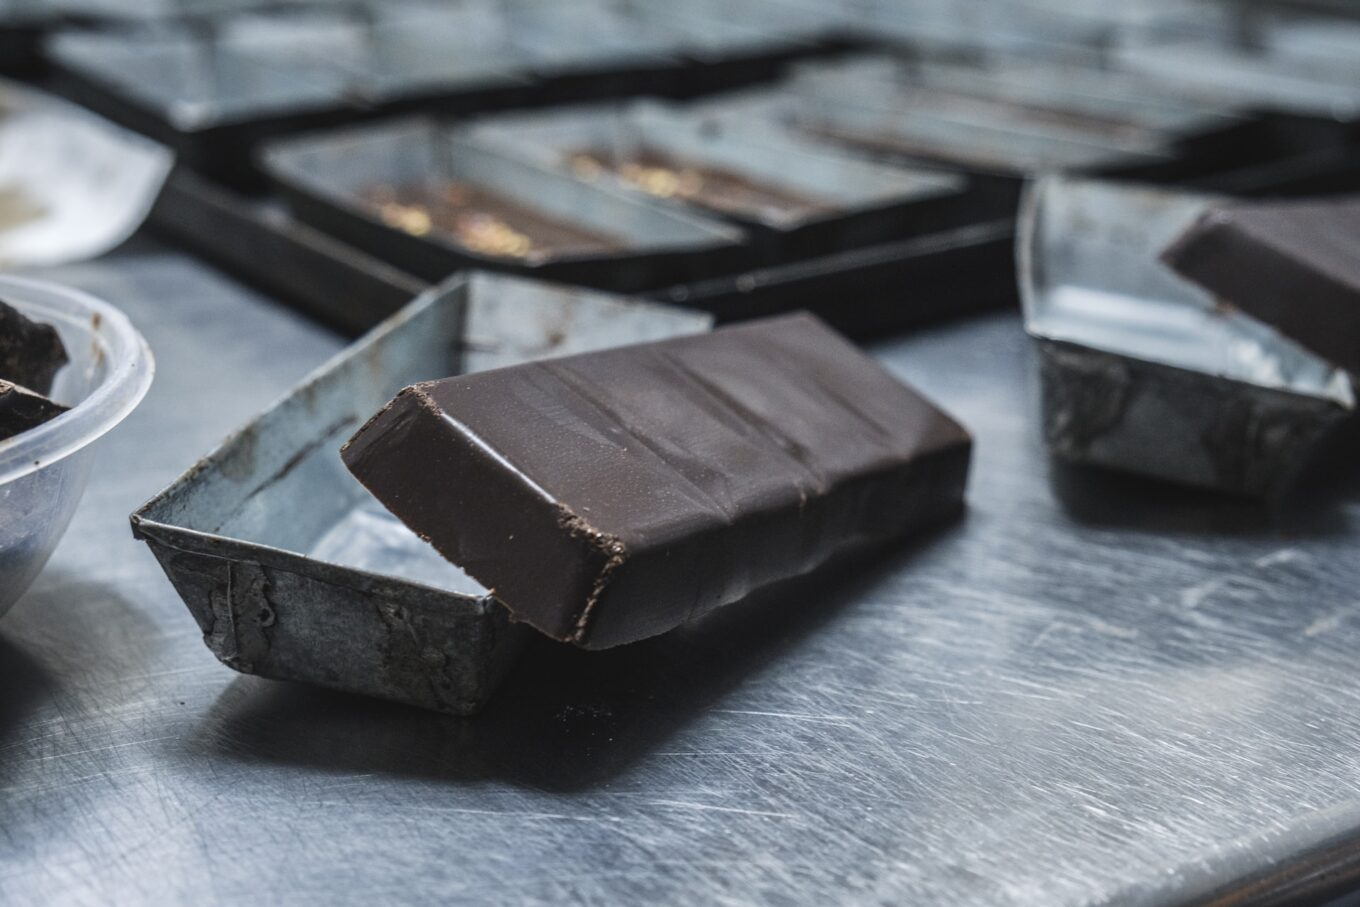 What's the difference between compound chocolate and real chocolate?